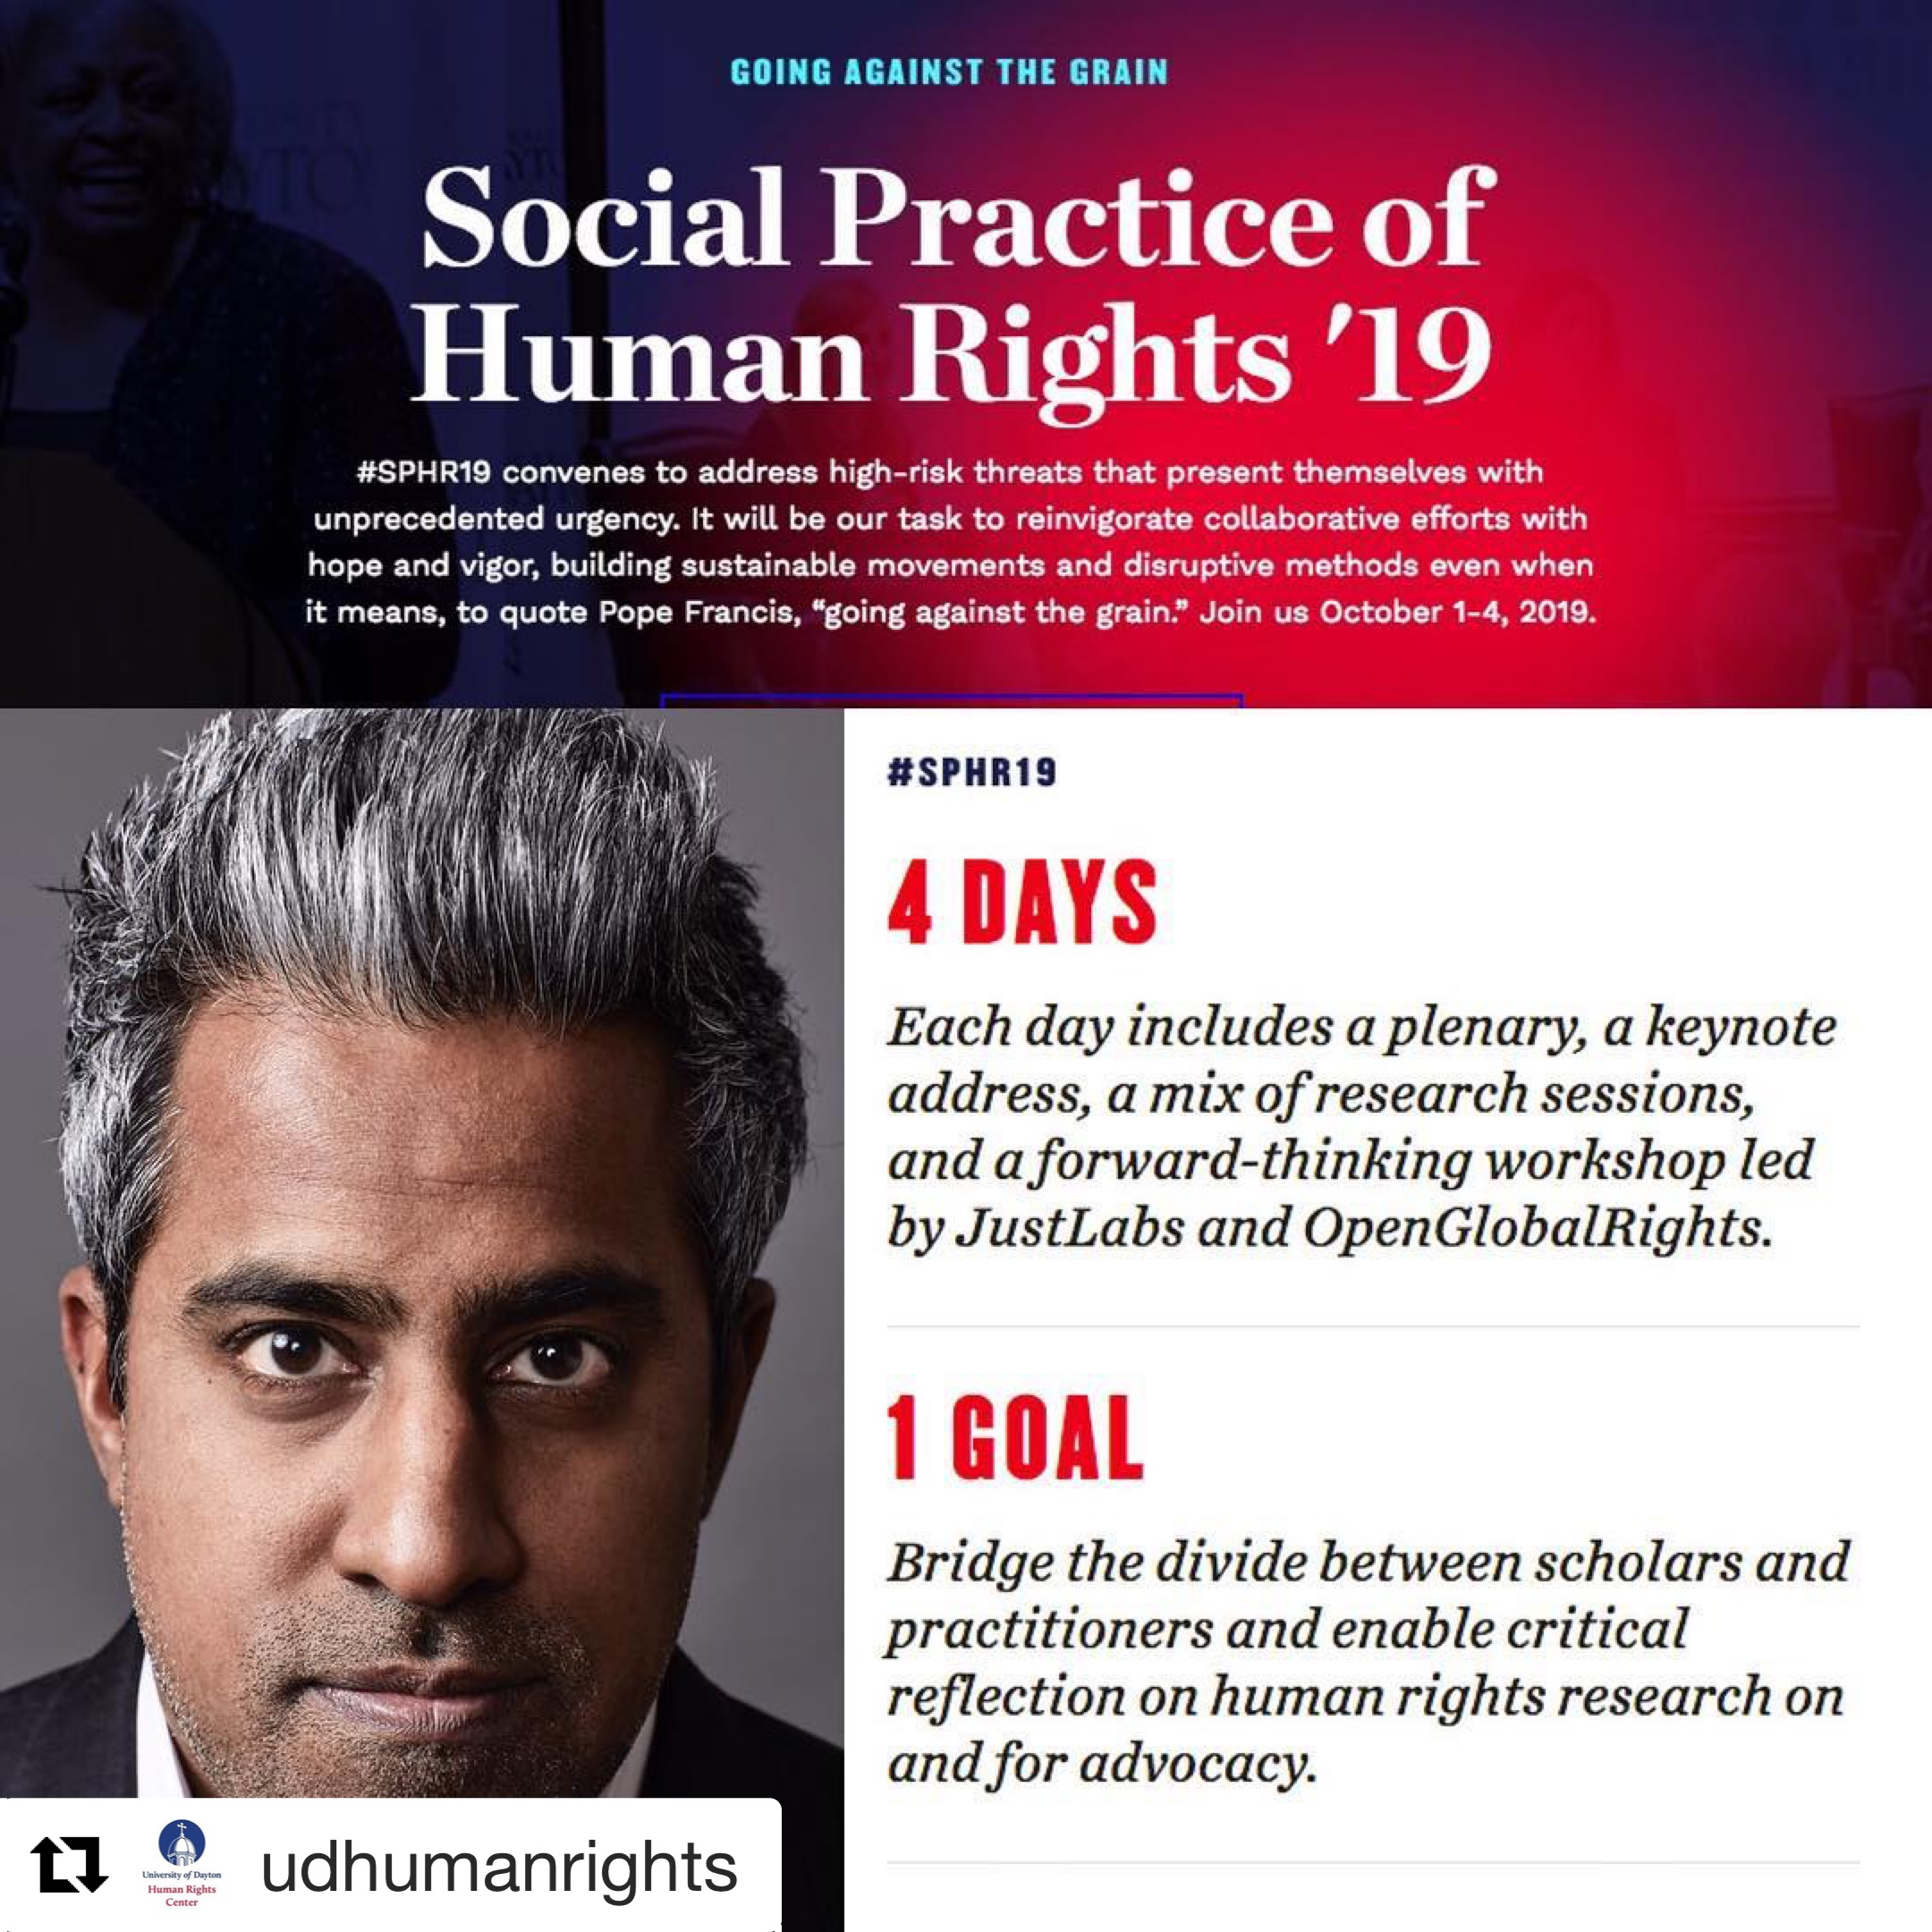 Save the date for next October 1 for the start of the University of Dayton's Human Rights 4 day conference.